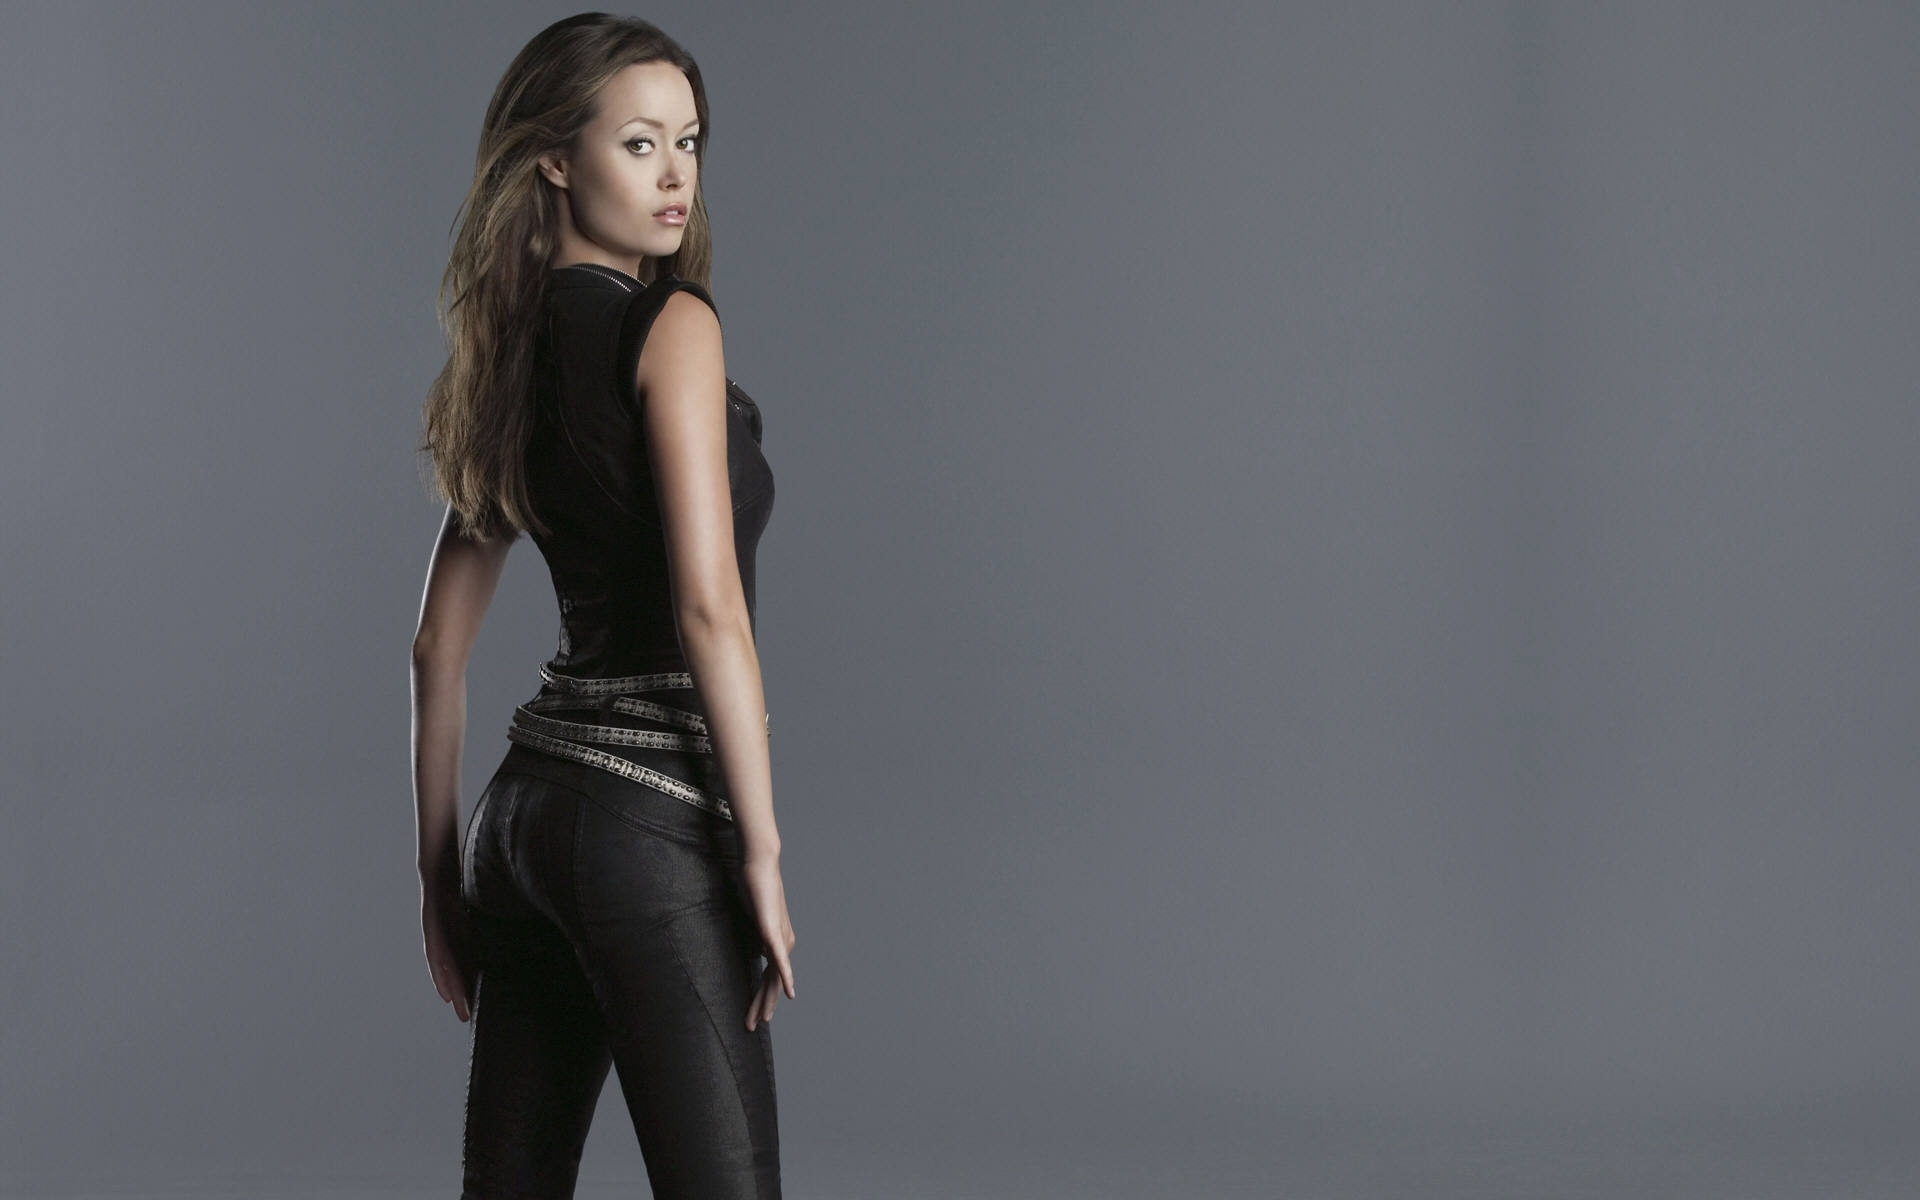 loic dl / wallpapers / summer glau